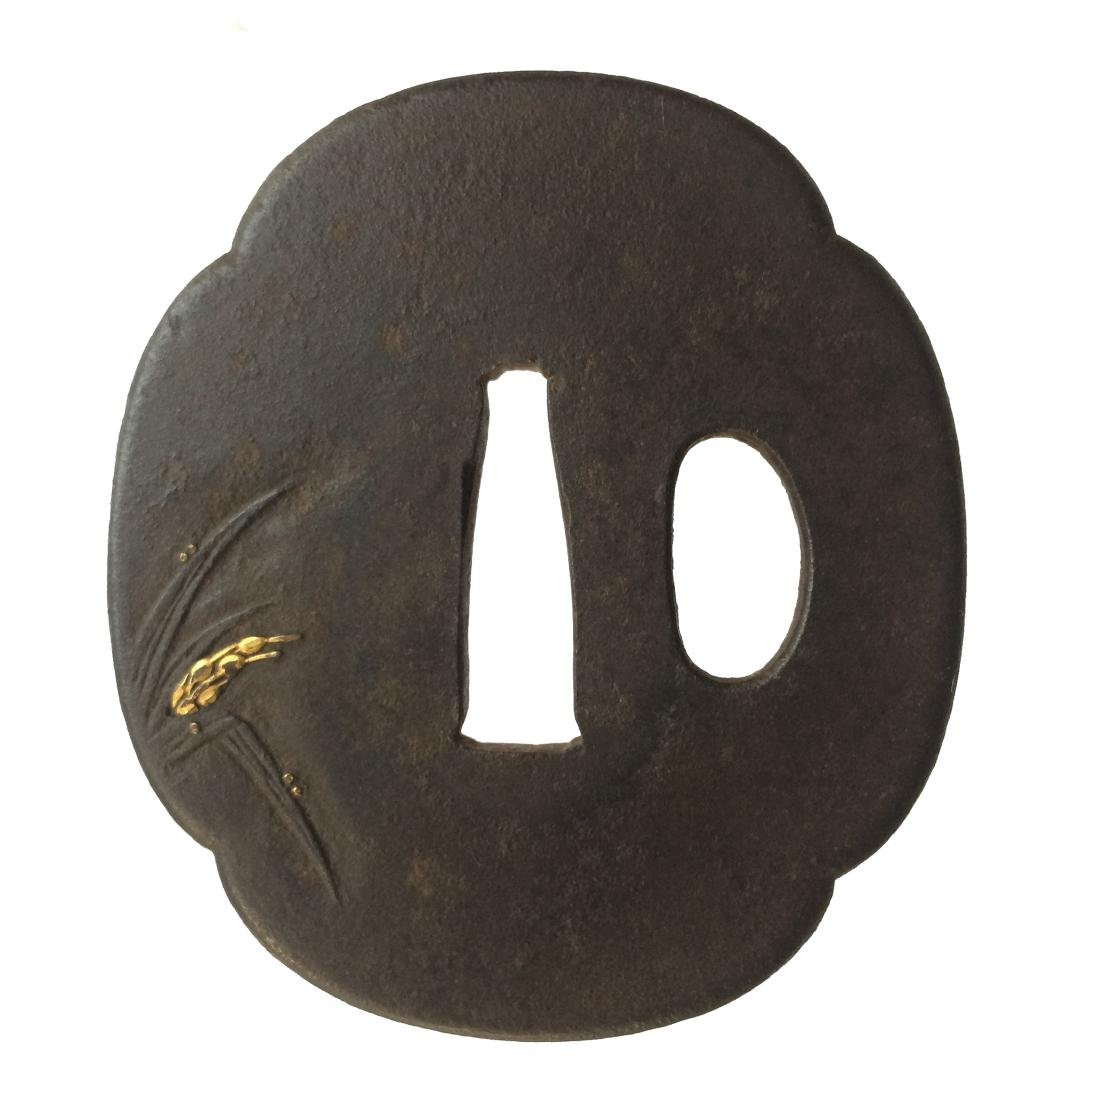 Iron tsuba inlaid with spikes and insects - 2